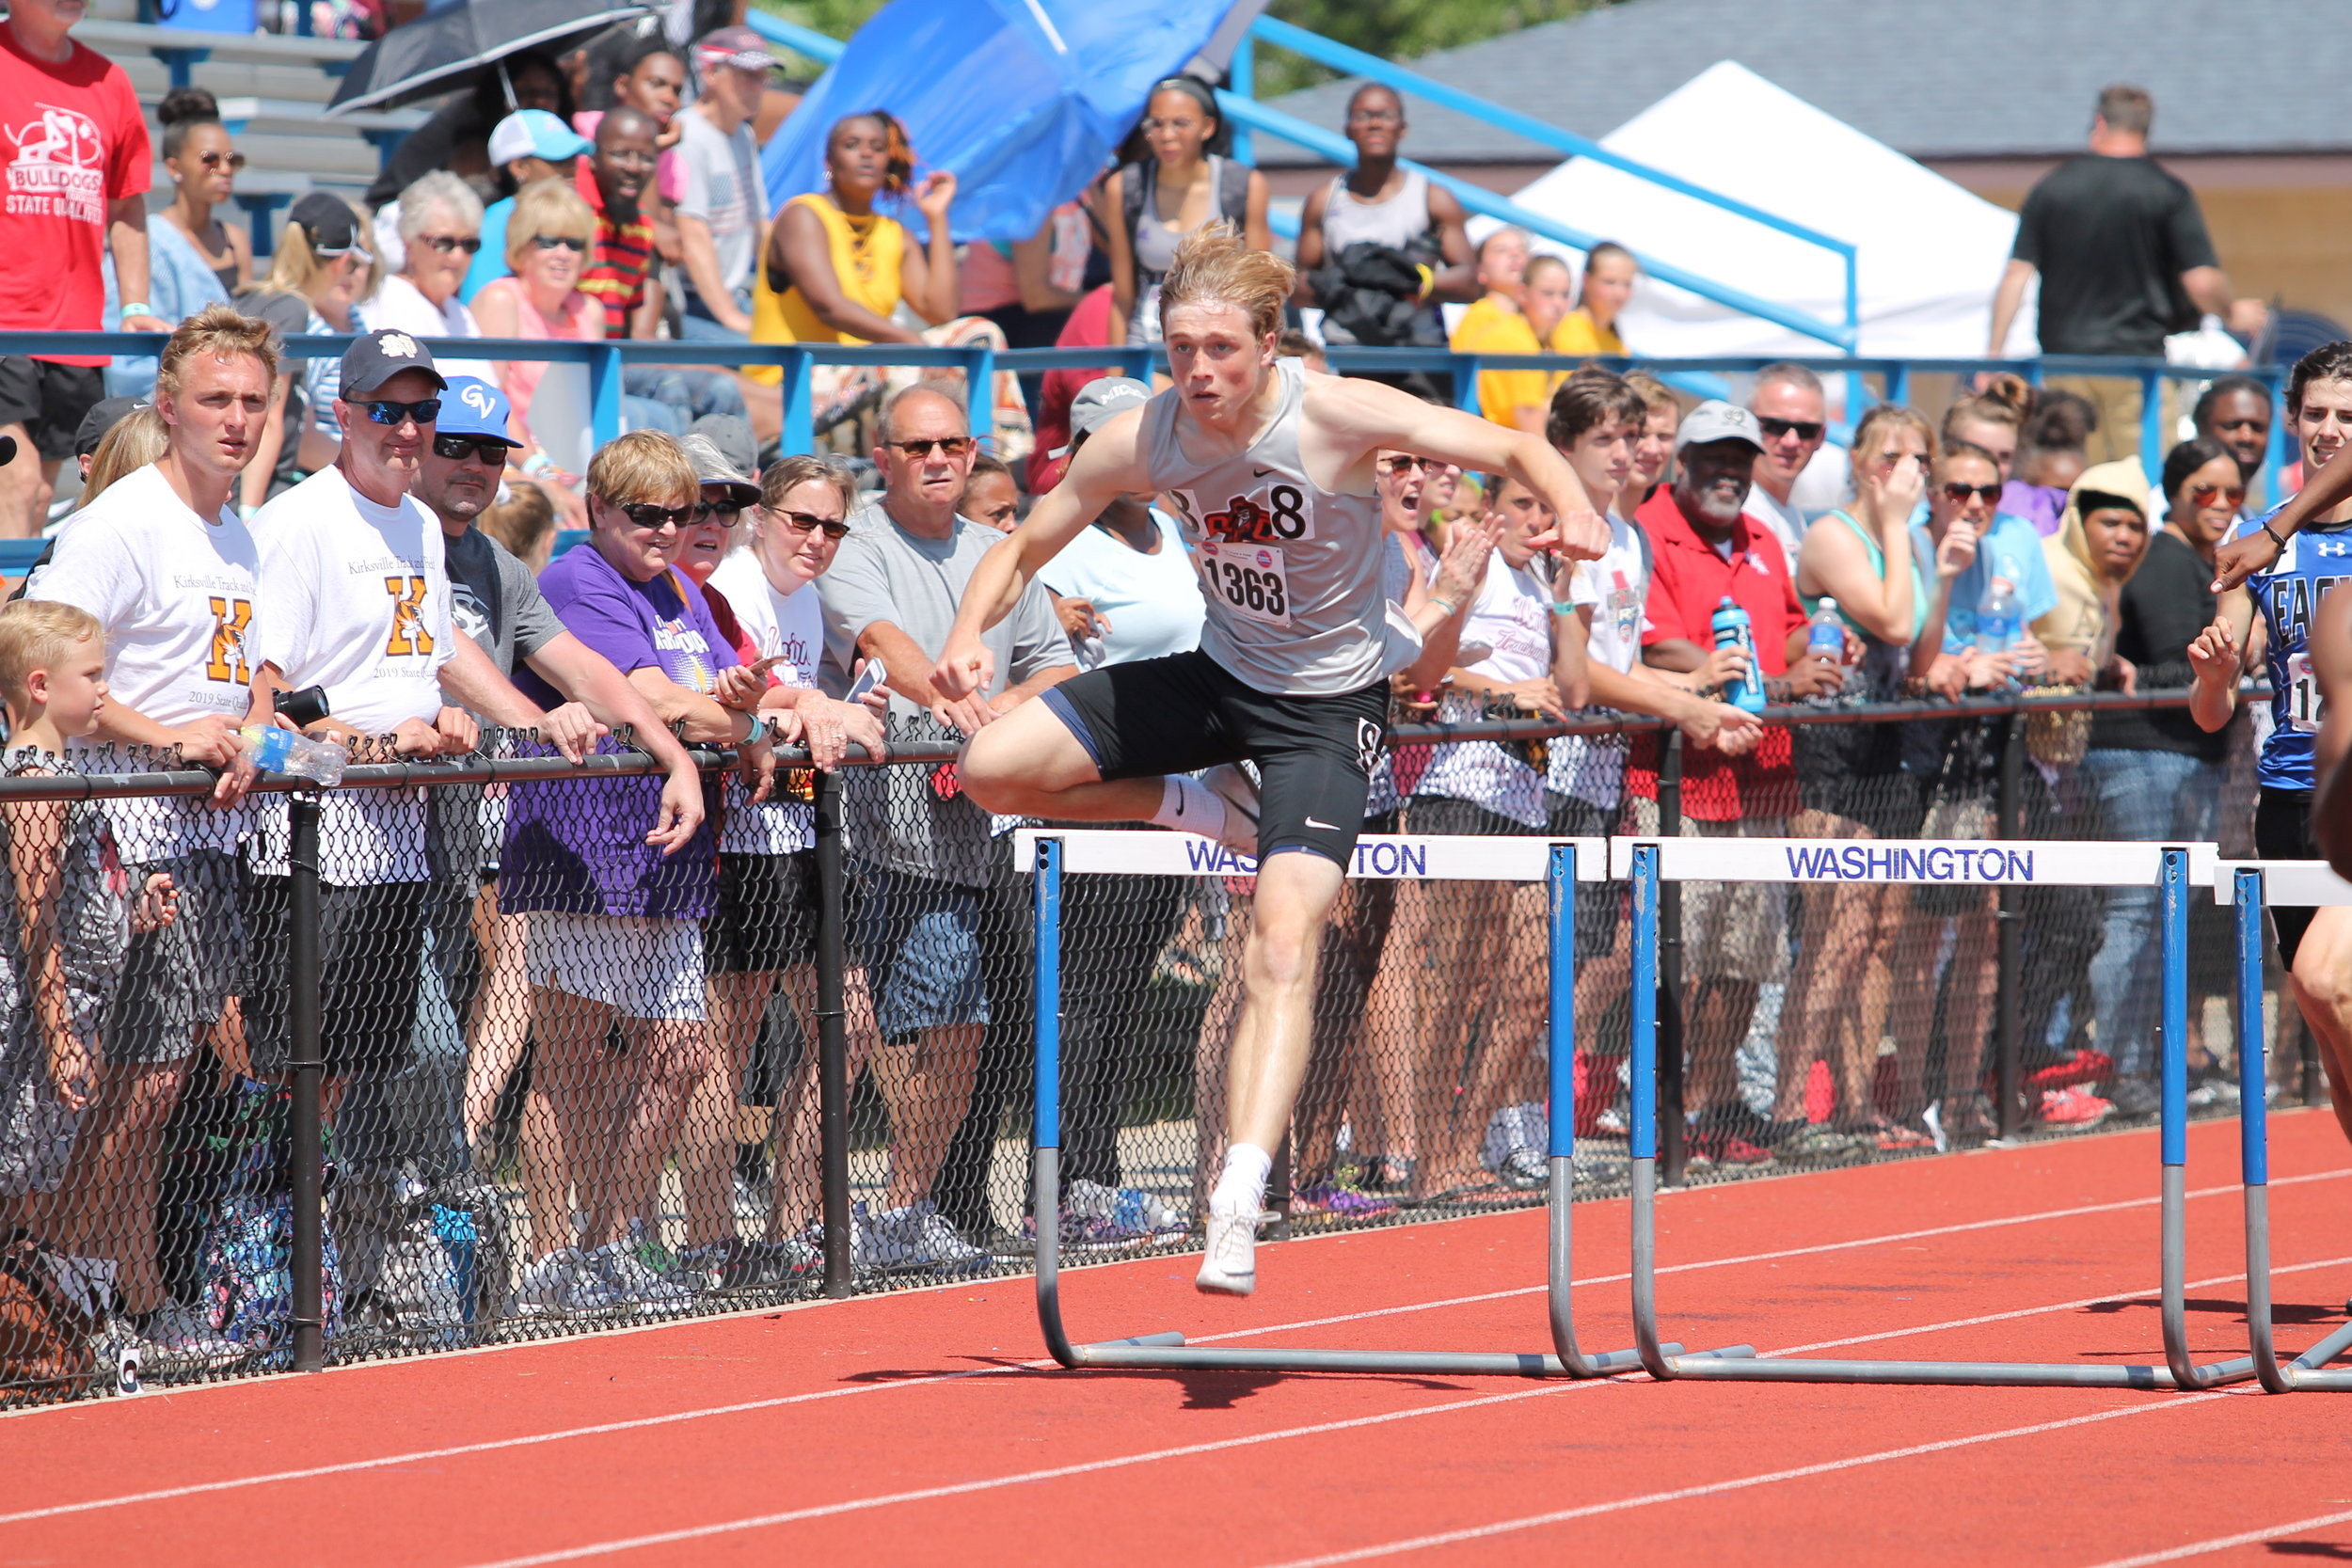 BREANNA CHEADLE/Special to the Citizen  Will Hay, right, took third place in the 300-meter hurdles despite running on the outside lane during the Class 4 championships on Saturday, May 25.